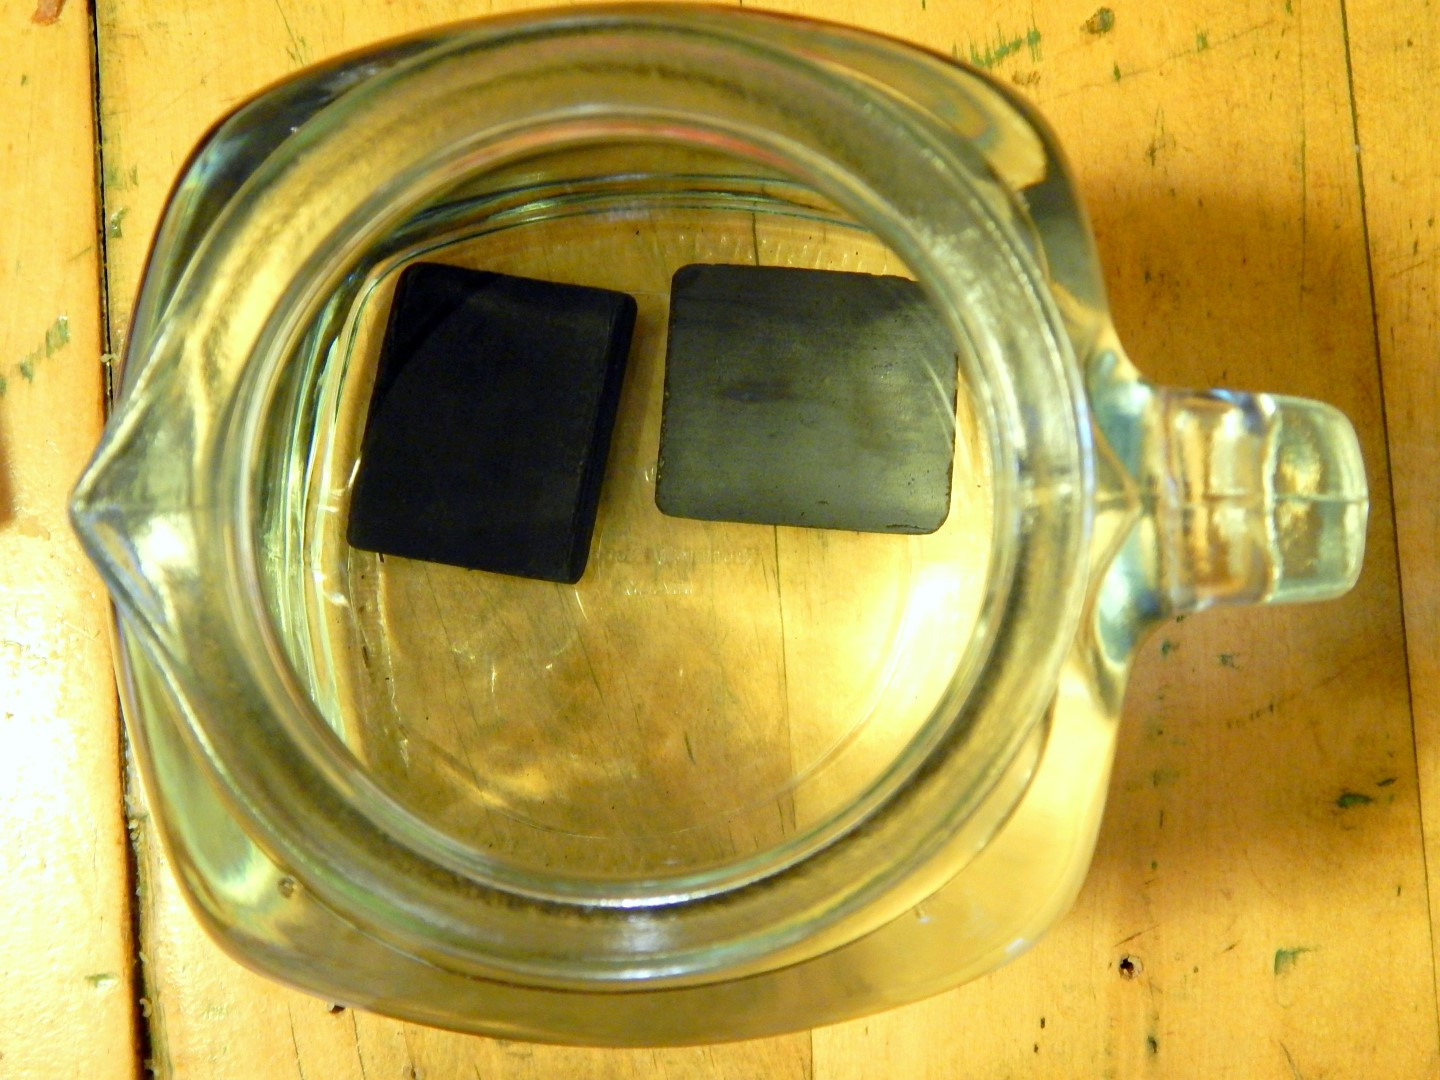 Activated charcoal filter in a jug of water